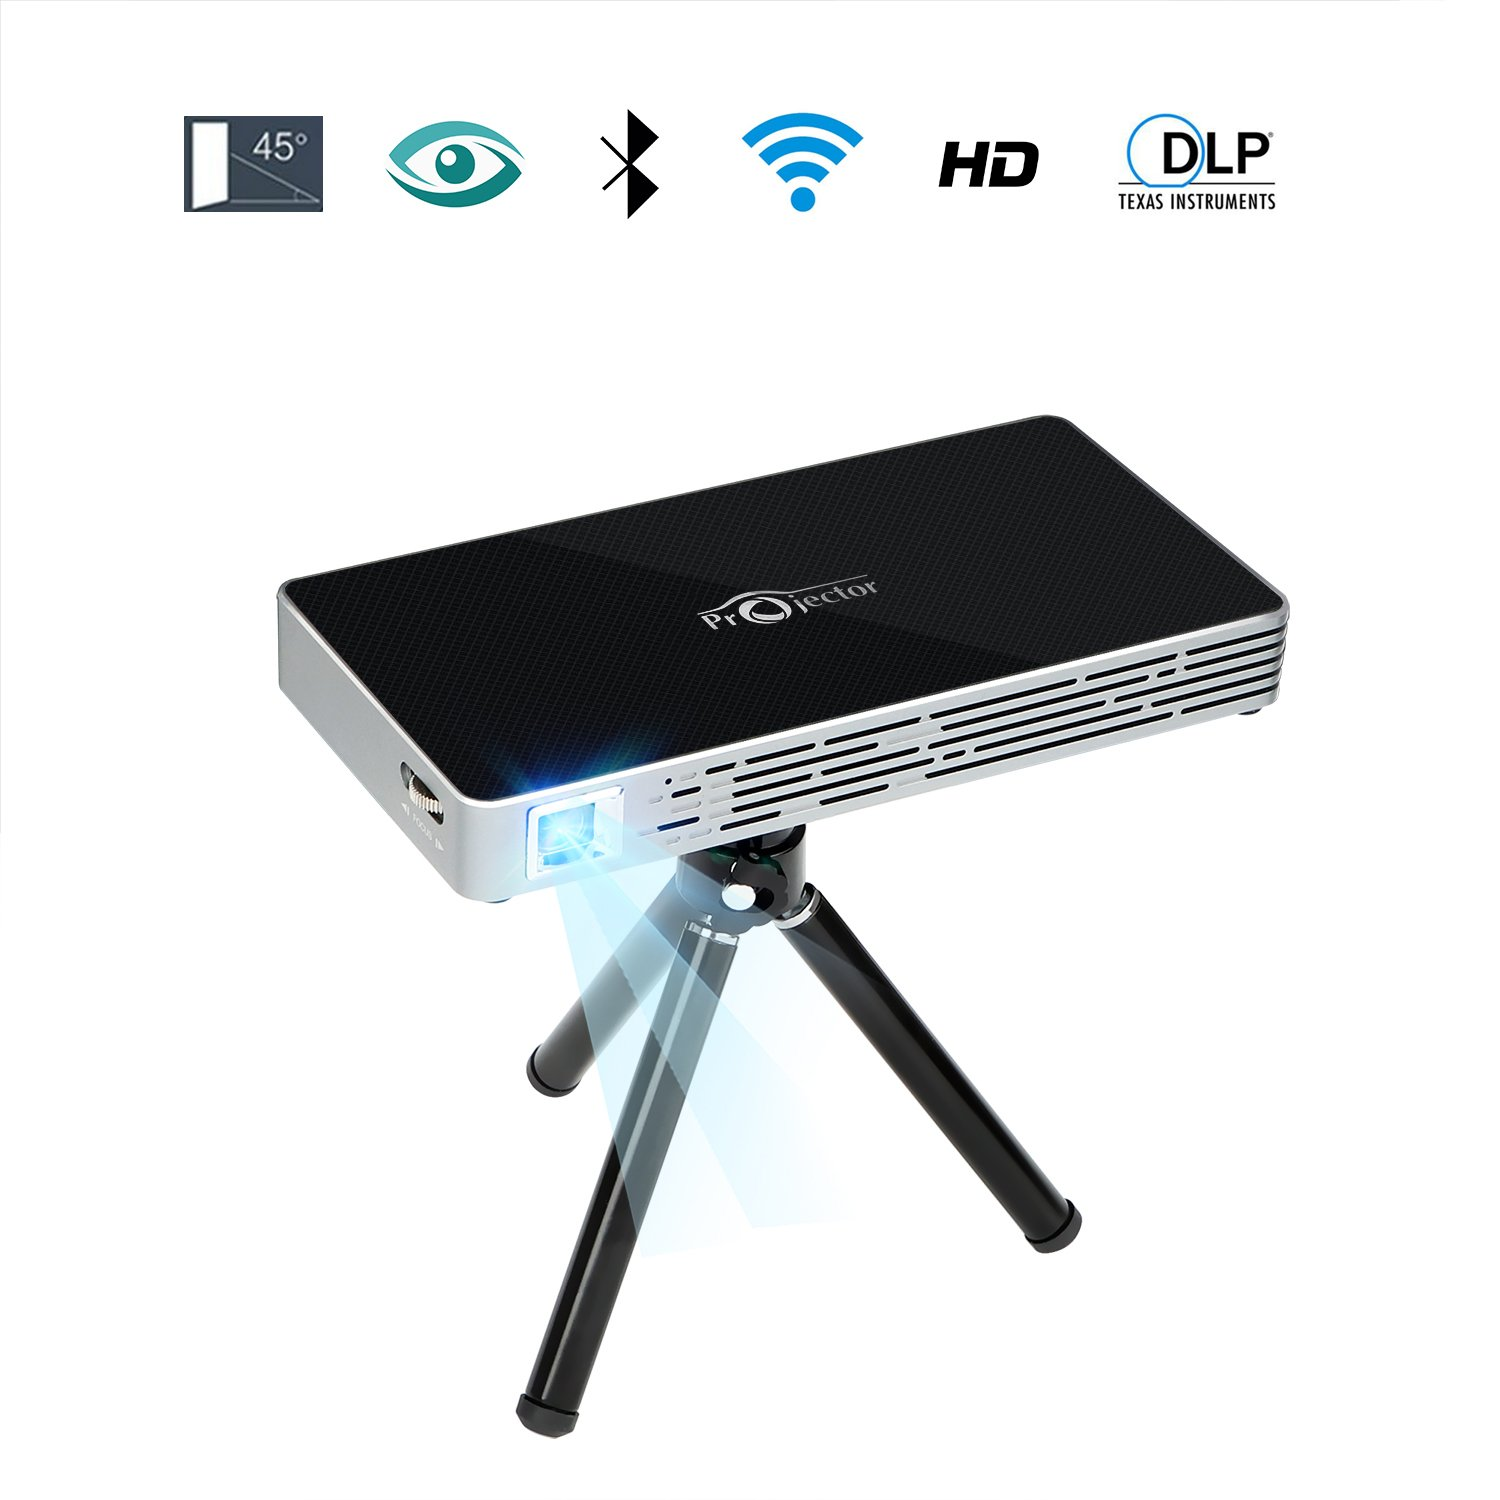 NOPNOG Pico Projector Mini Video Projector with Tripod Remote Control Support Wifi HD 1080P Bluetooth Micro SD Card Max 120'' Display by NOPNOG